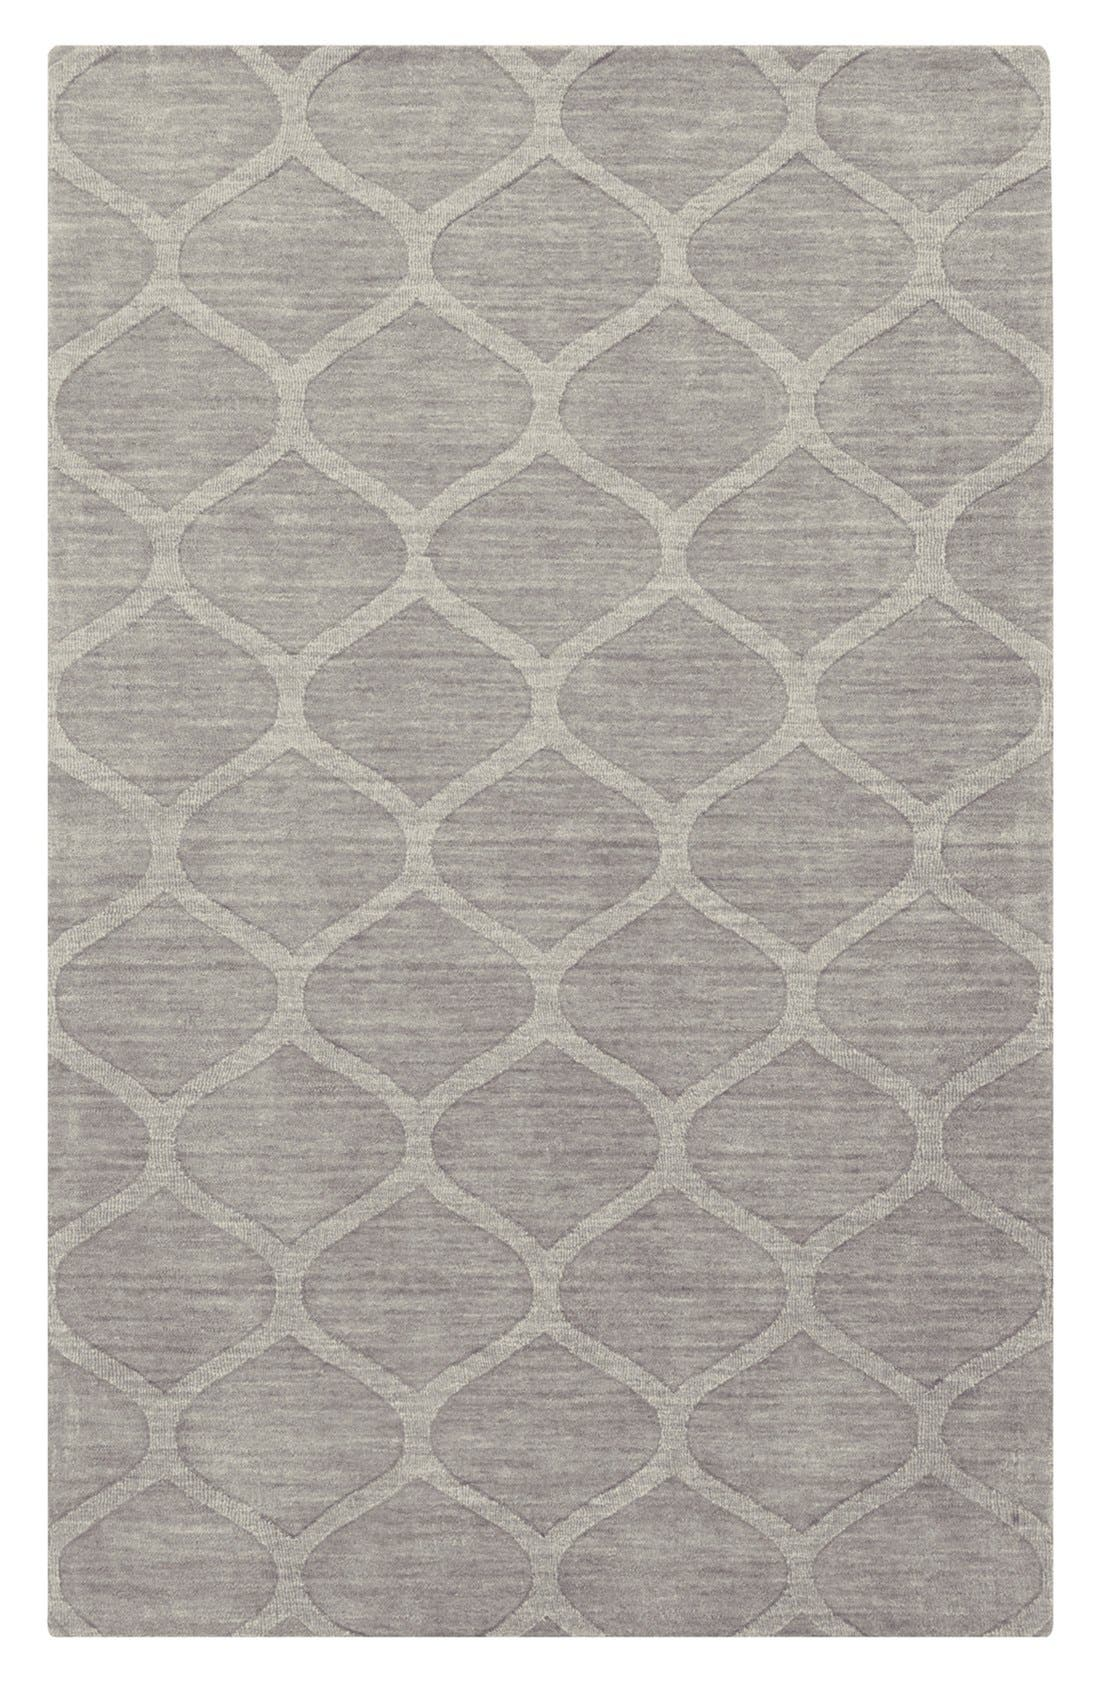 'Mystique' Hand Loomed Wool Rug,                         Main,                         color, Grey